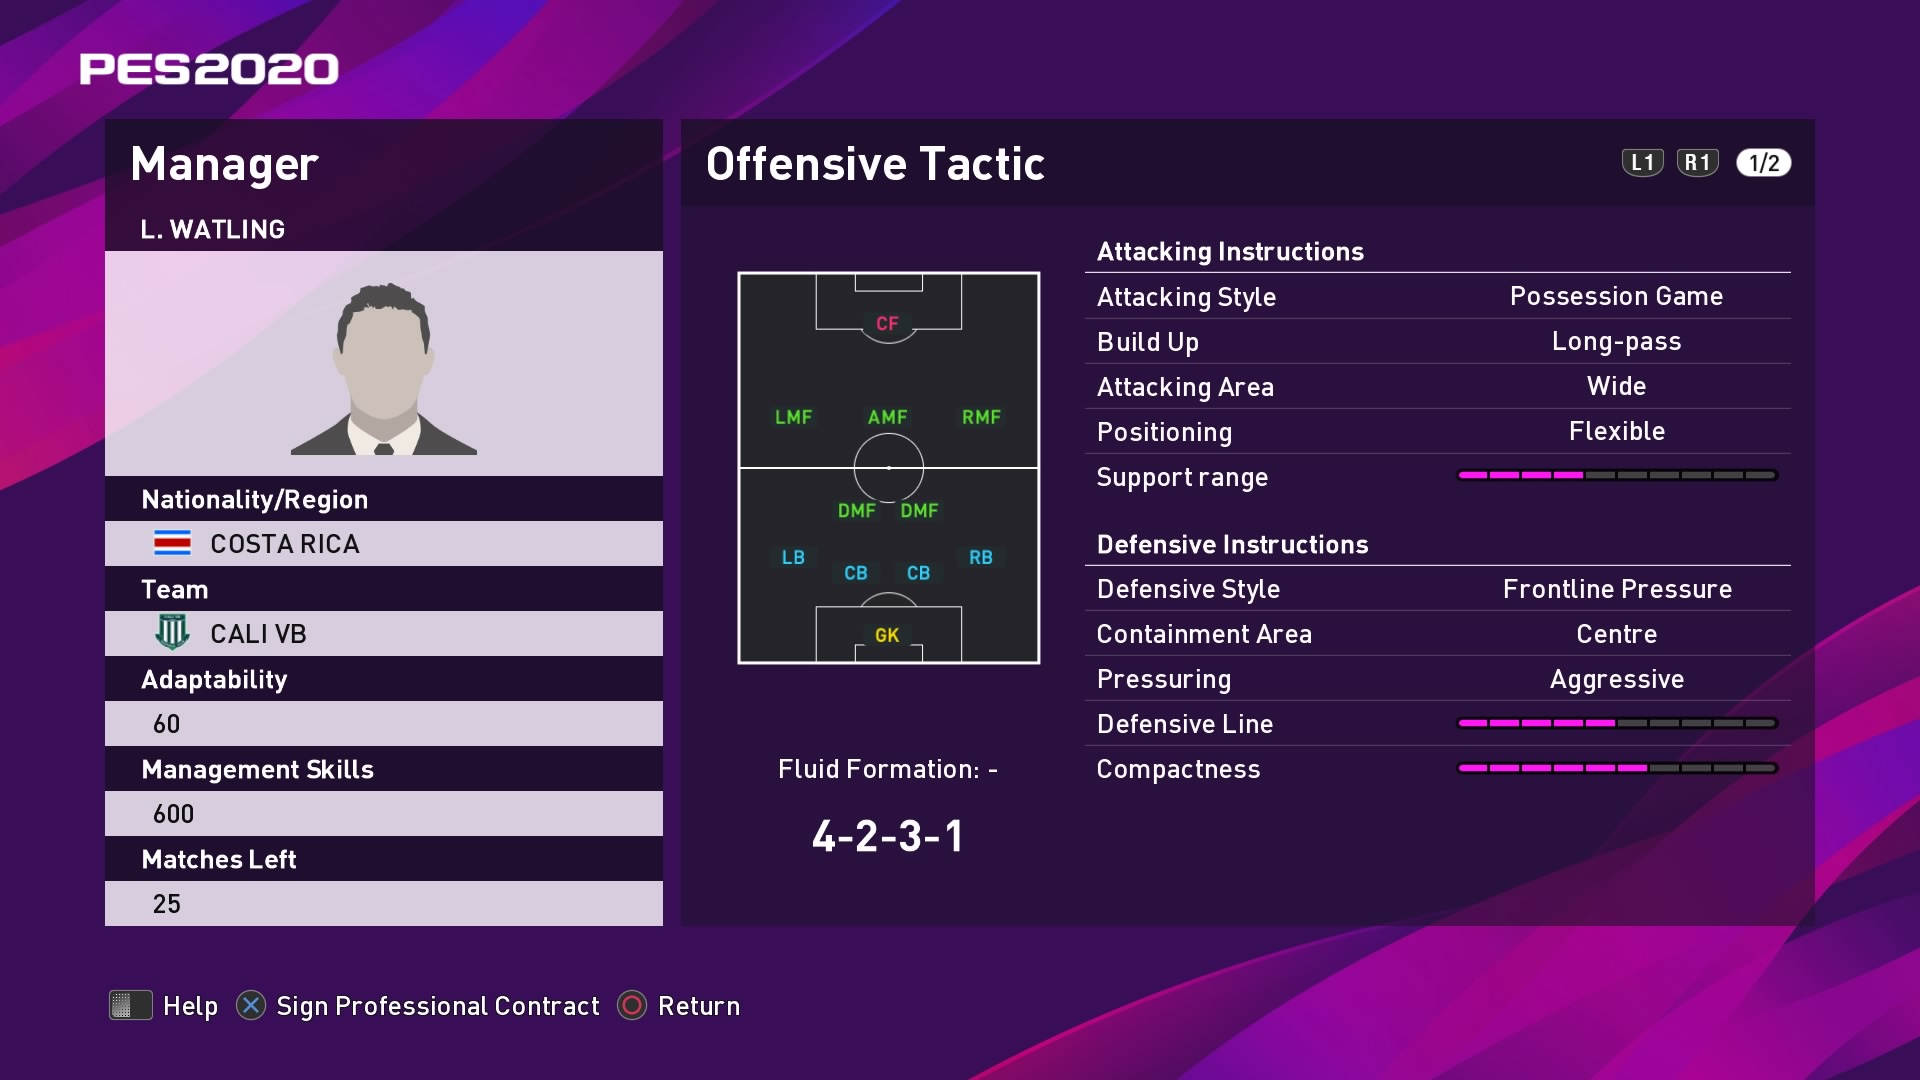 L. Watling (Alfredo Arias) Offensive Tactic in PES 2020 myClub